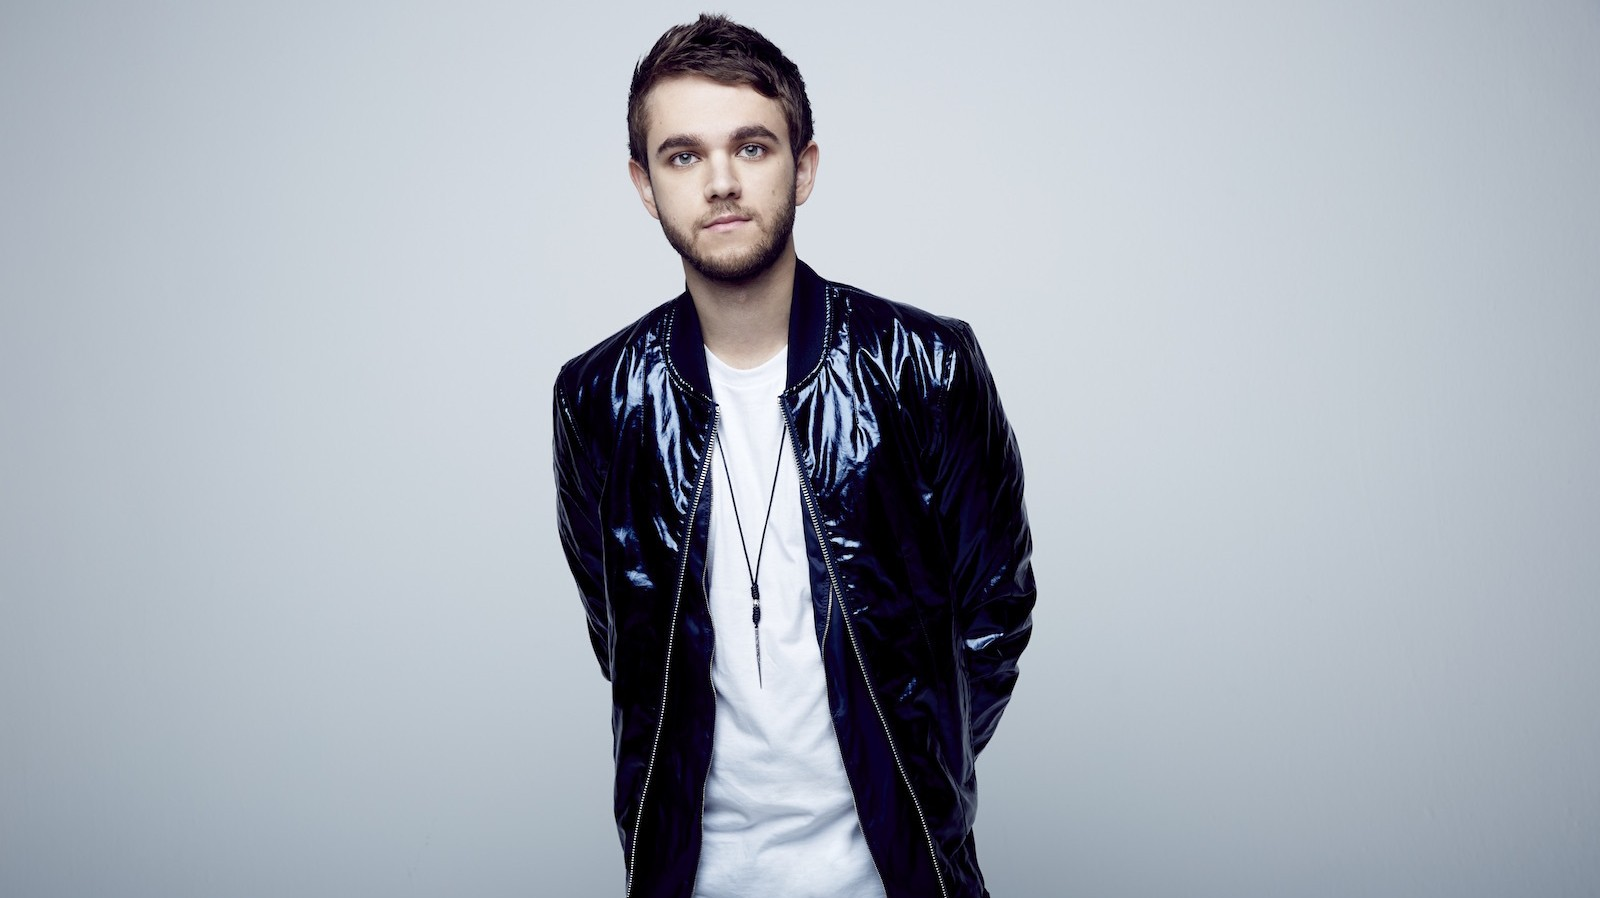 Zedd Explains Why Trump's Travel Ban Led Him to Produce an ACLU Benefit Show